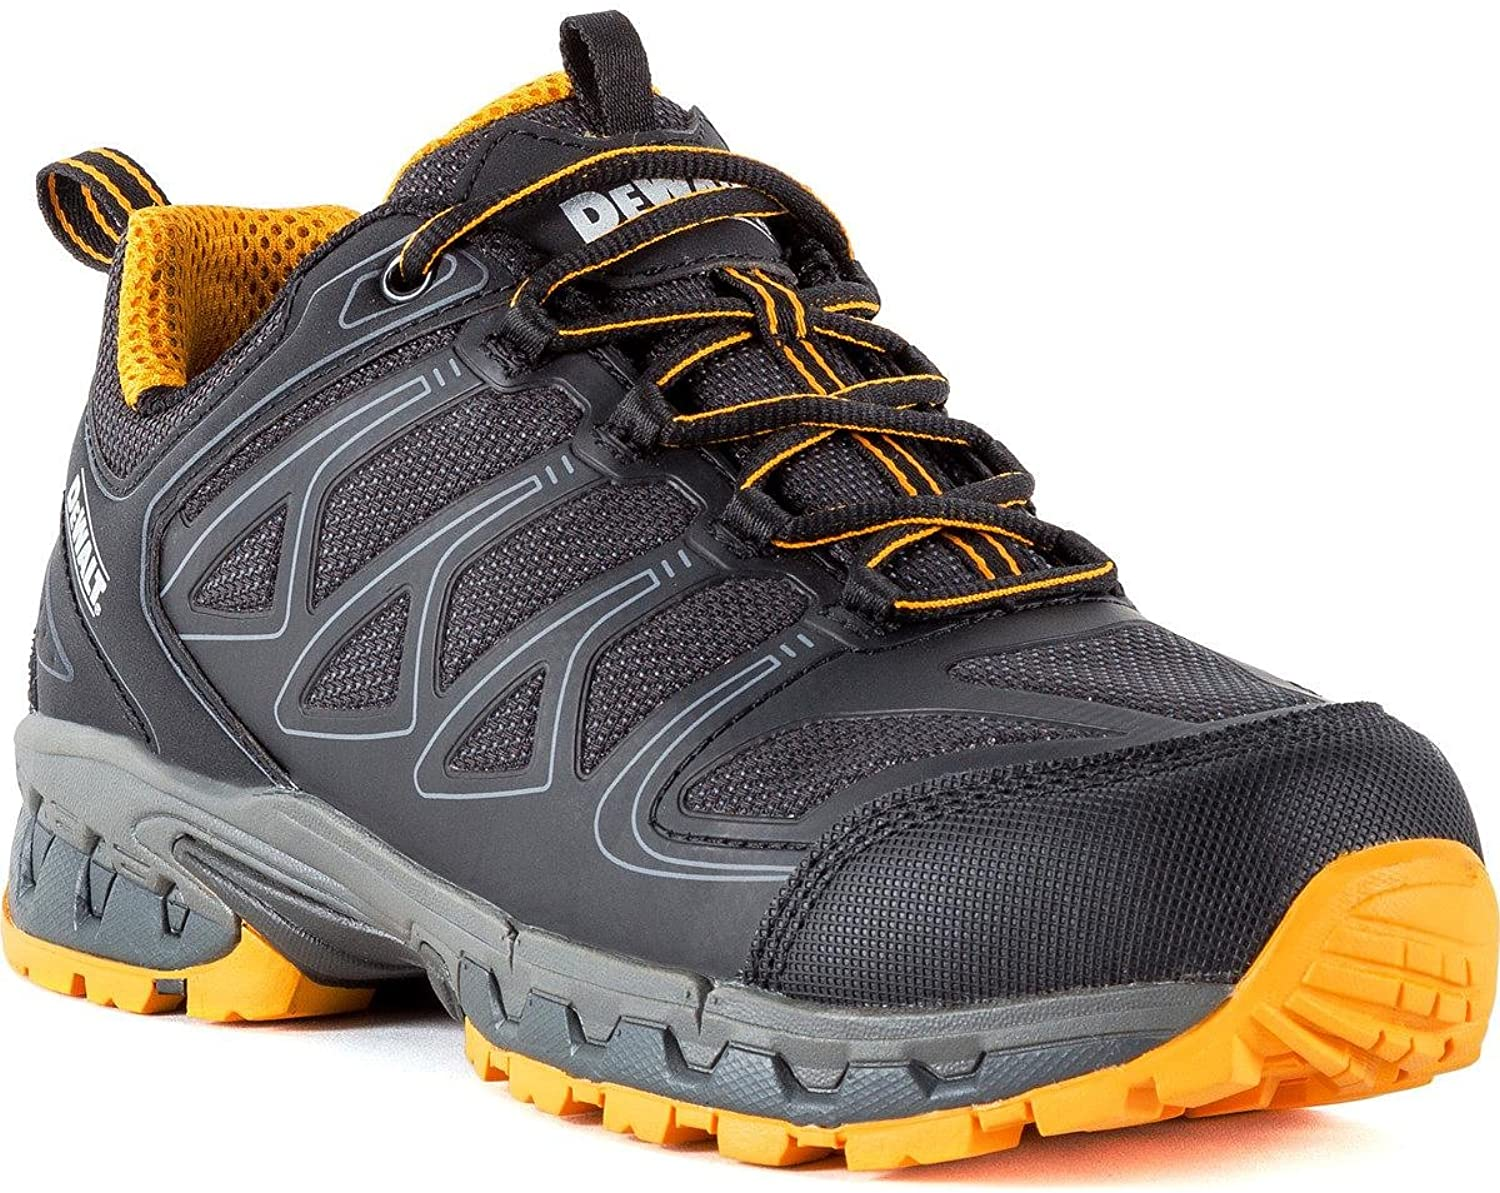 DEWALT Men's Bgoldn Aluminum Toe Work shoes, Style NO. DXWP10002